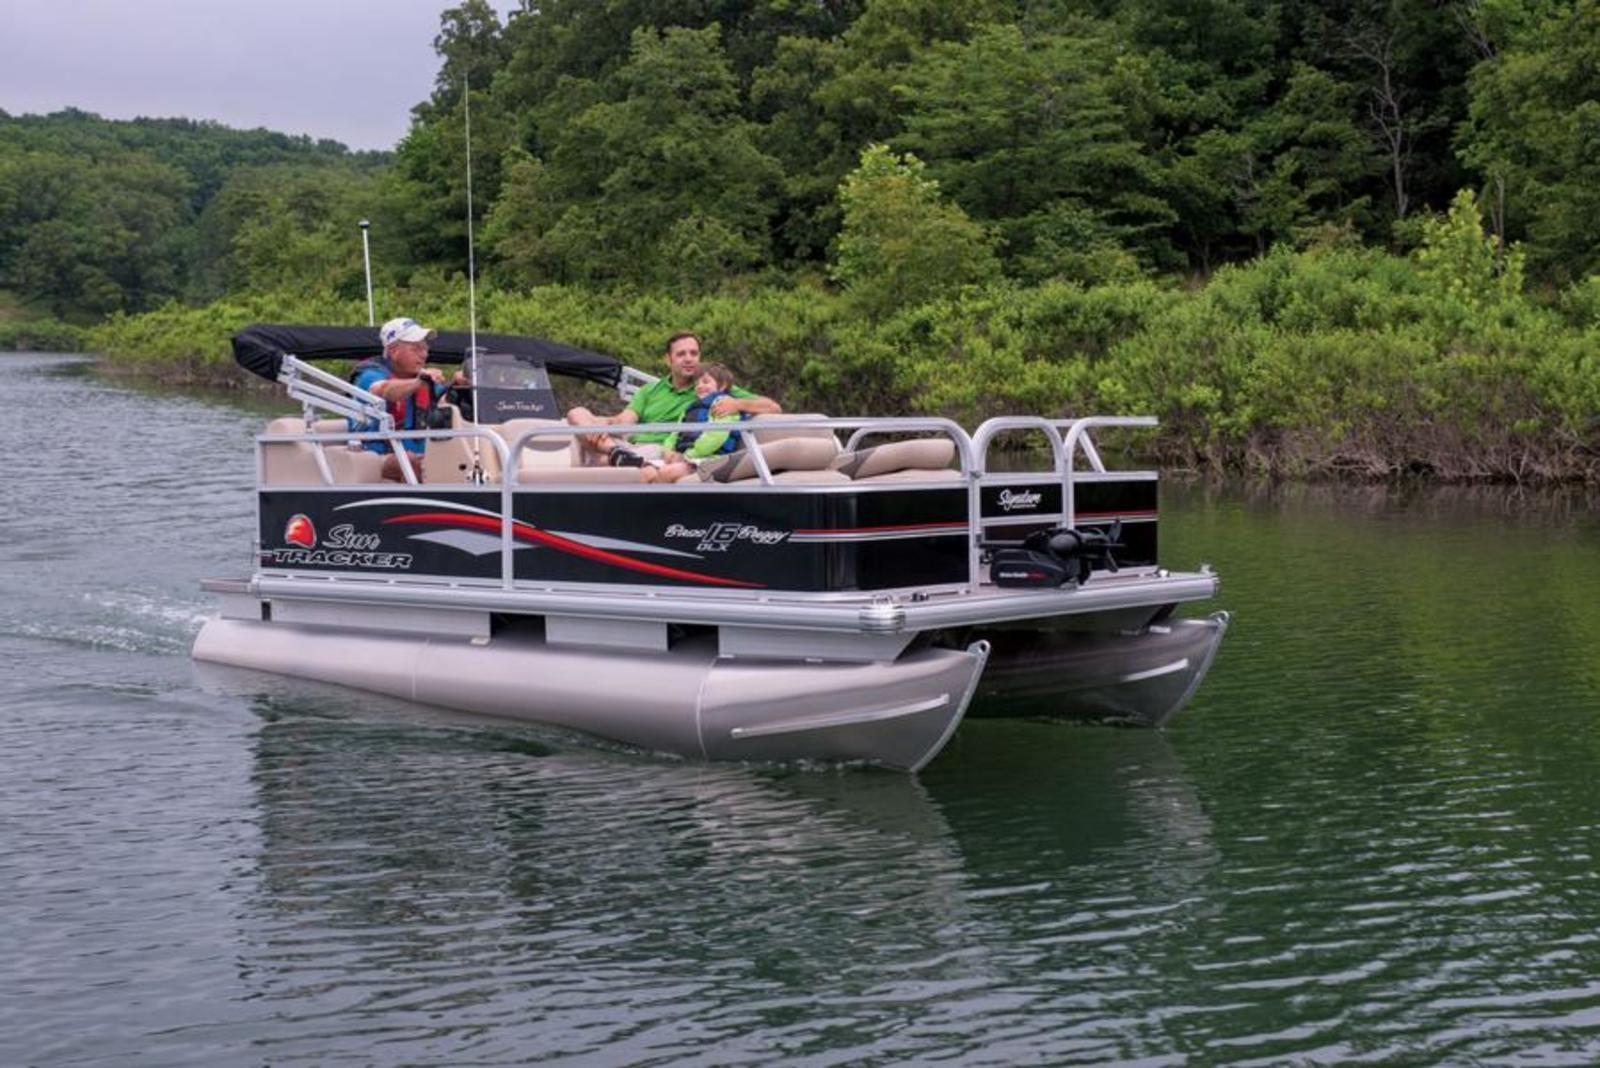 2015 sun tracker bass buggy 16 dlx review gallery top for Fishing pontoon boat reviews